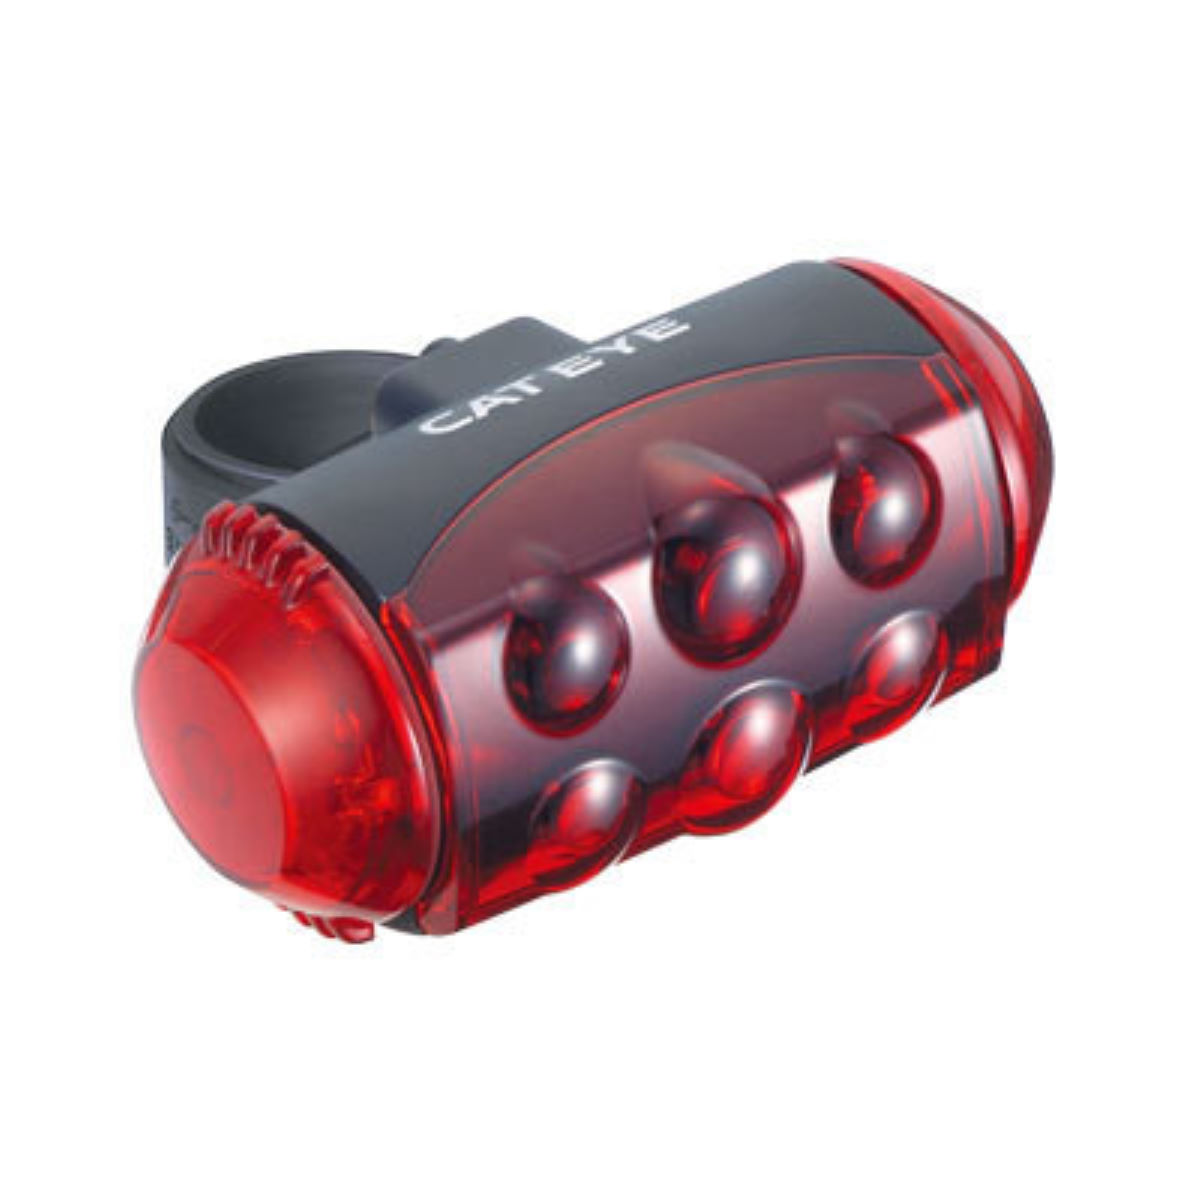 Cateye TL-LD1100 LED Rear Light